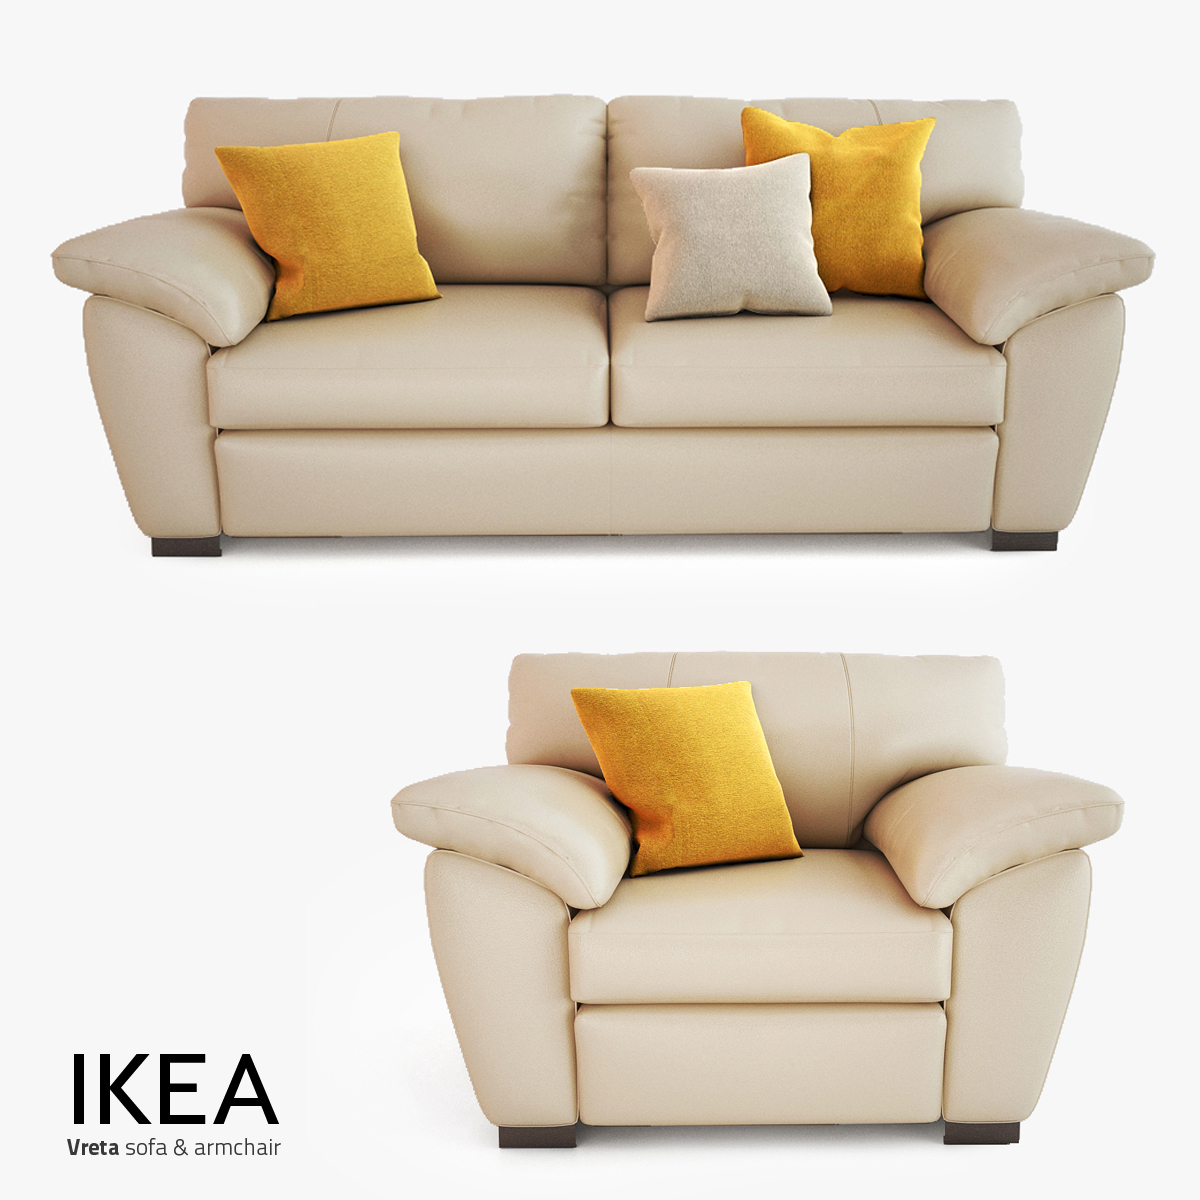 Fine Ikea Vreta Sofas Gmtry Best Dining Table And Chair Ideas Images Gmtryco